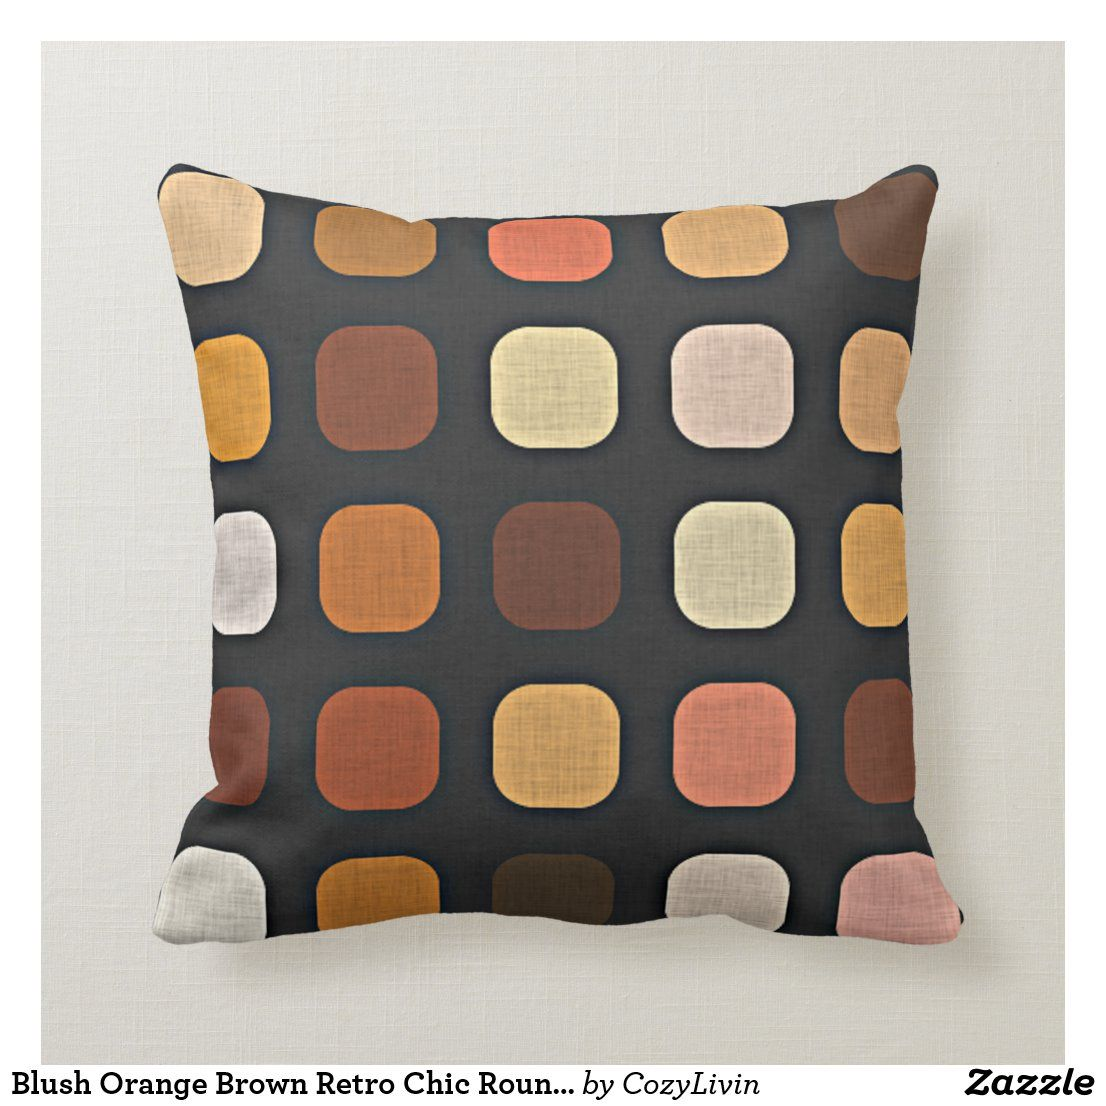 Blush Orange Brown Retro Chic Round Square Pattern Throw Pillow Zazzle Com Patterned Outdoor Pillows Patterned Throw Pillows Coral Throw Pillows